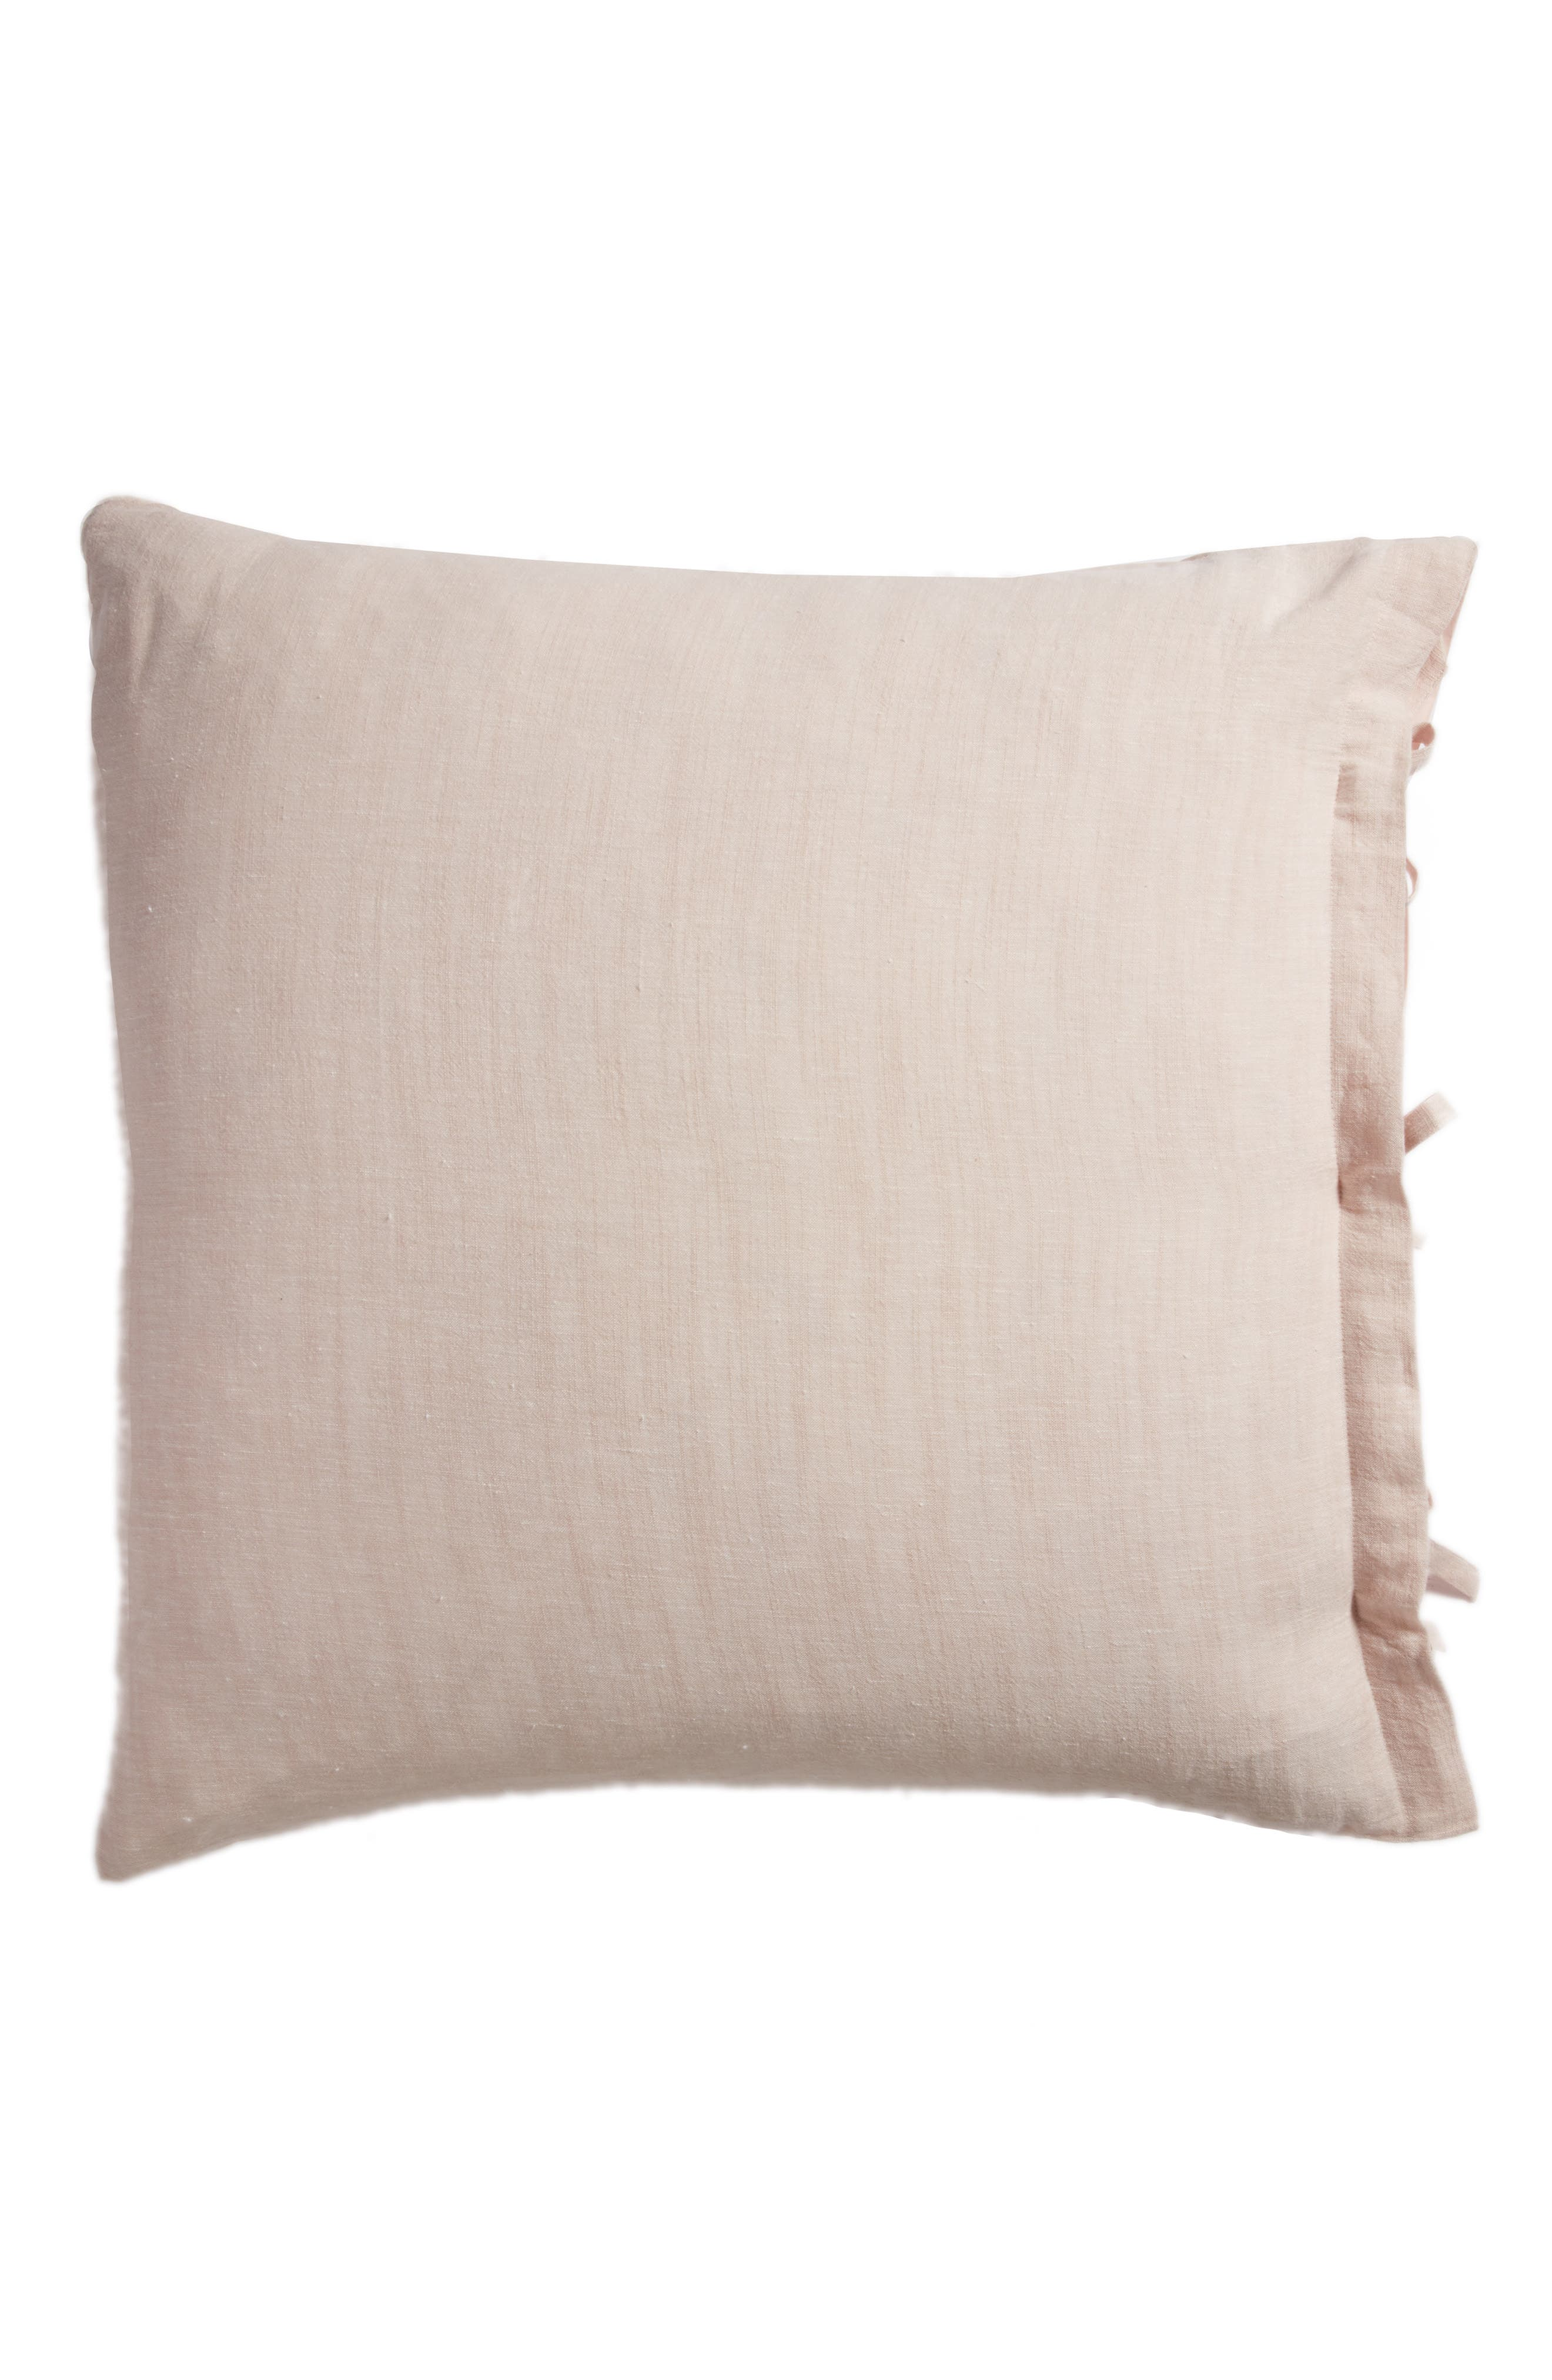 Main Image - Treasure & Bond Relaxed Cotton & Linen Euro Sham